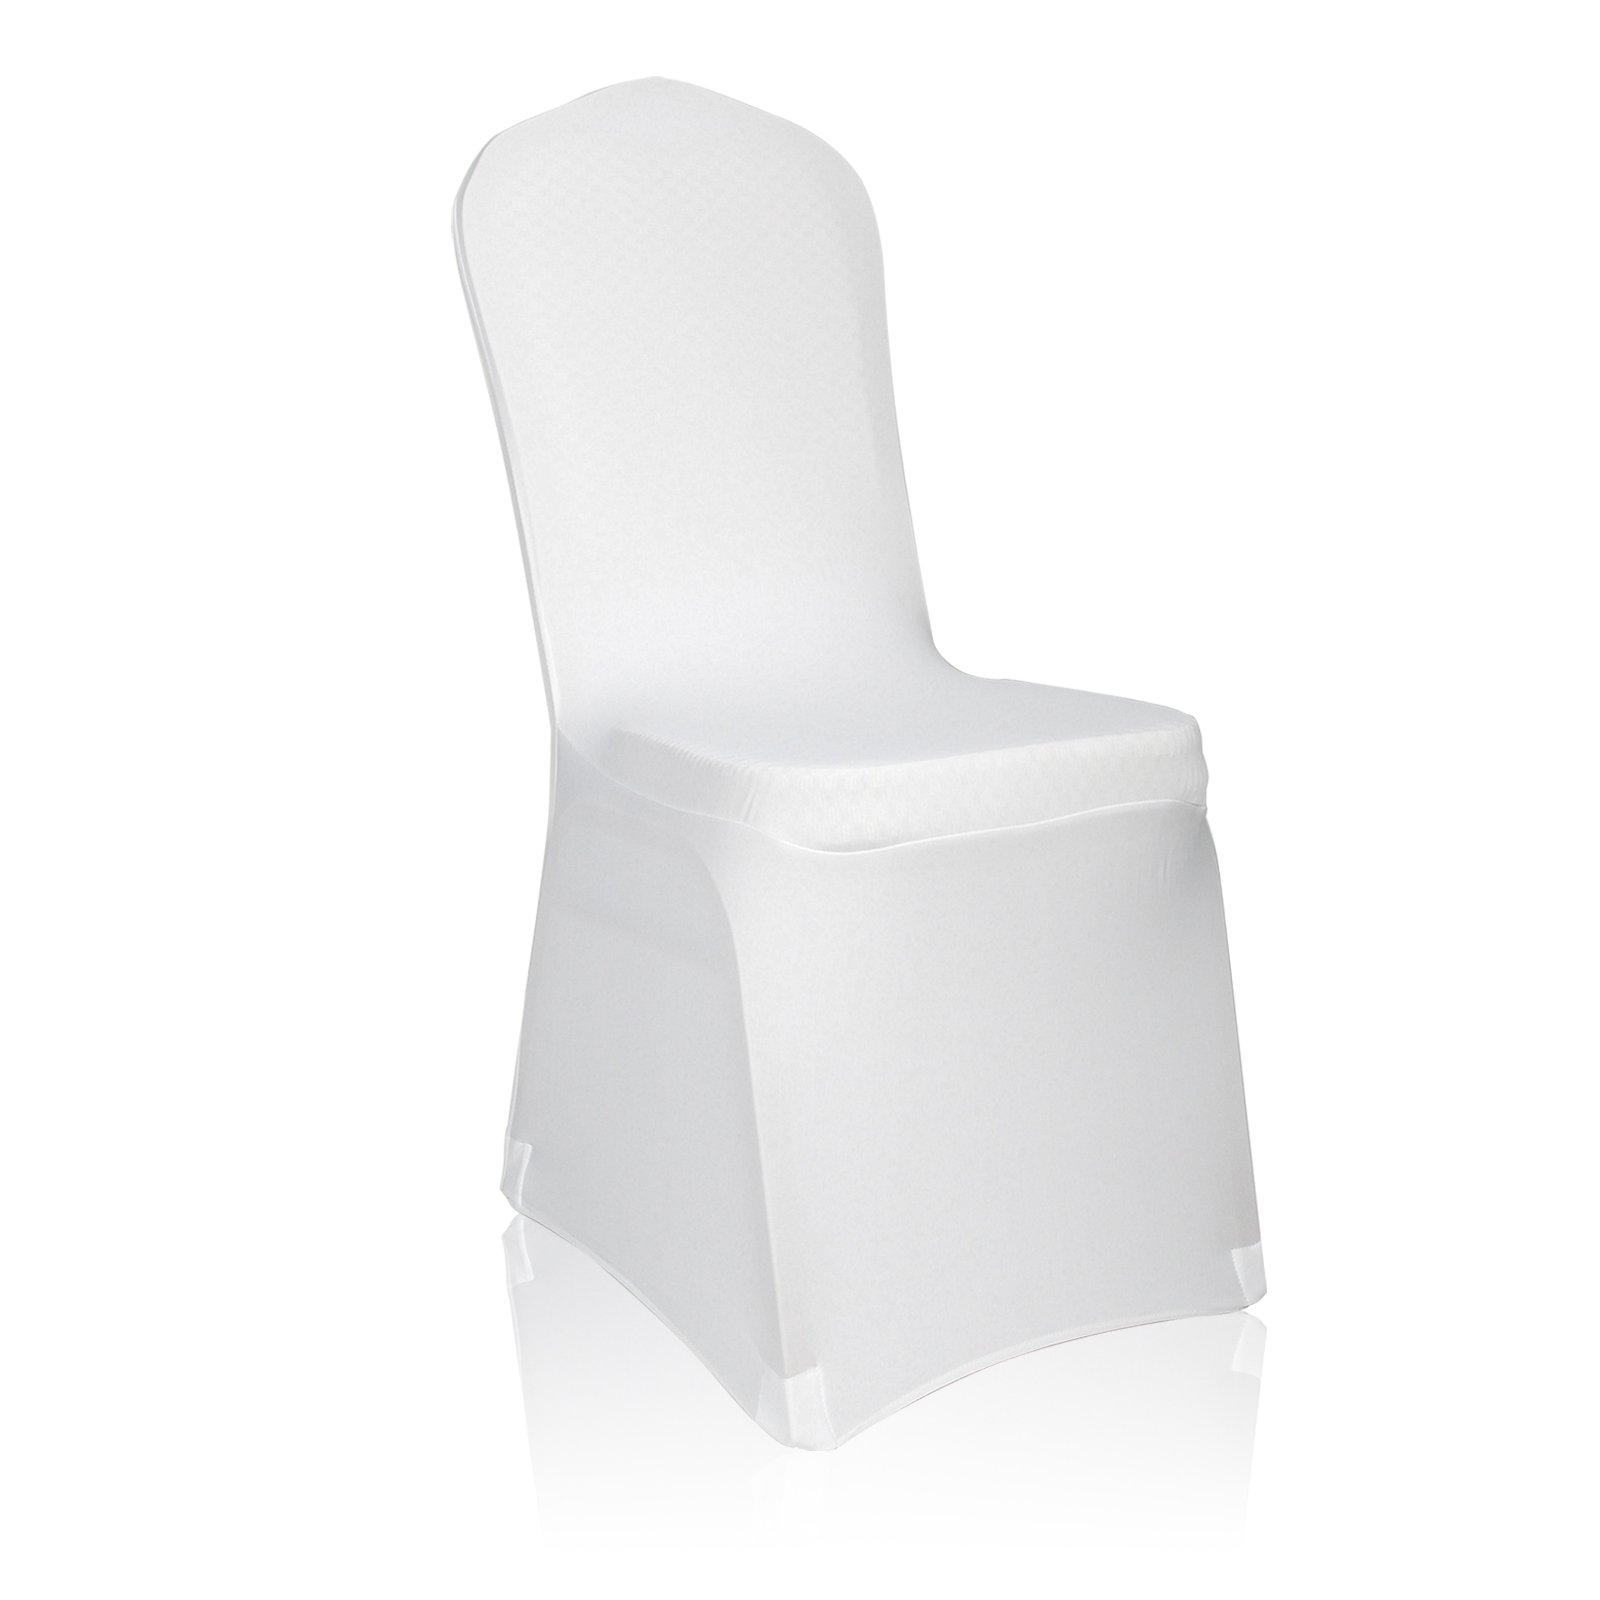 Emart Set of 50pcs White Color Polyester Spandex Banquet Wedding Party Chair Covers by EMART